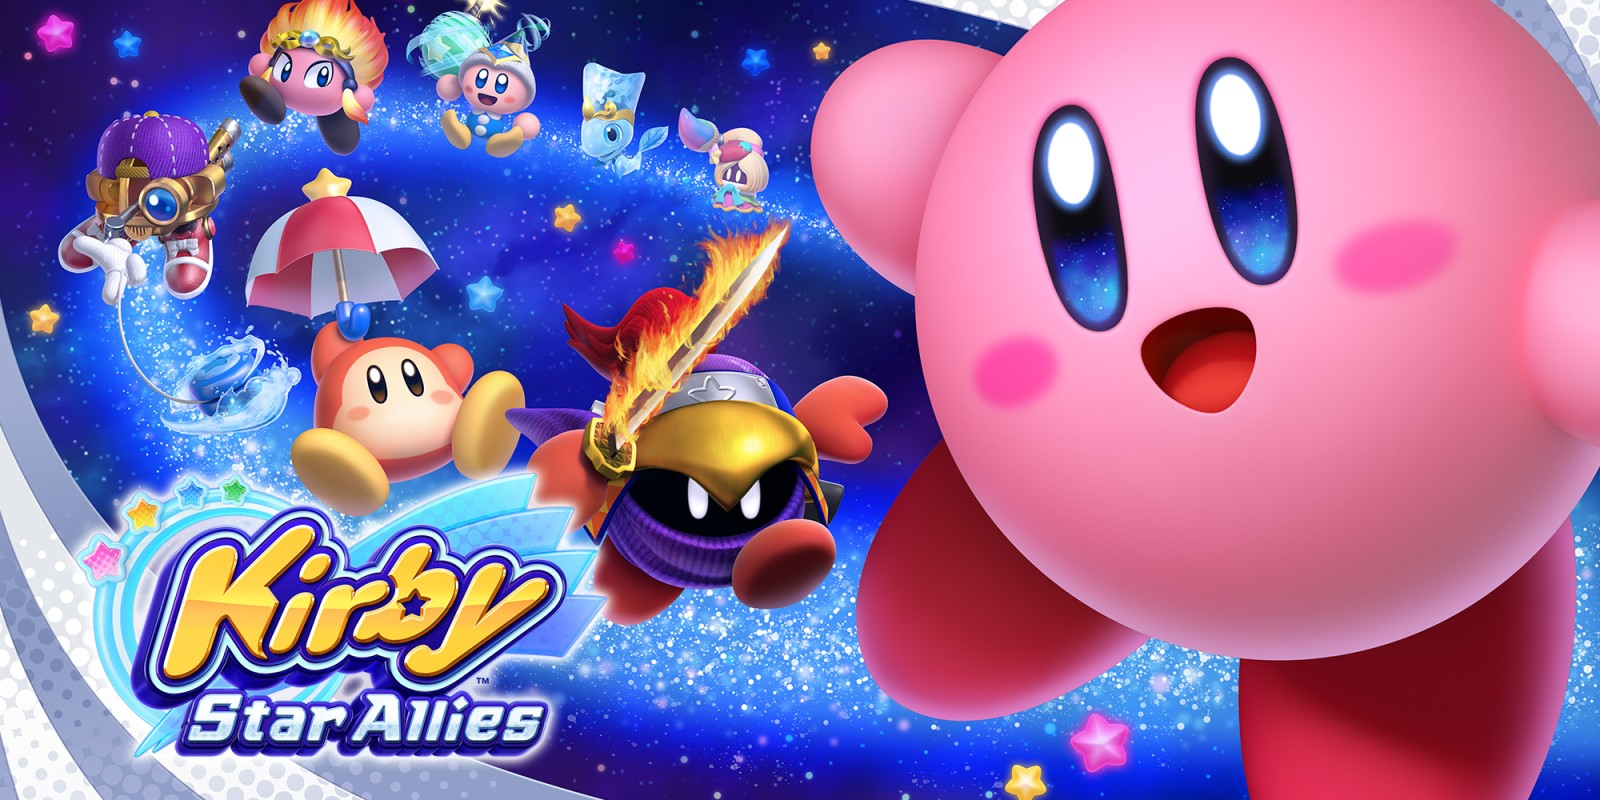 Kirby Star Allies (Nintendo Switch, 2018)